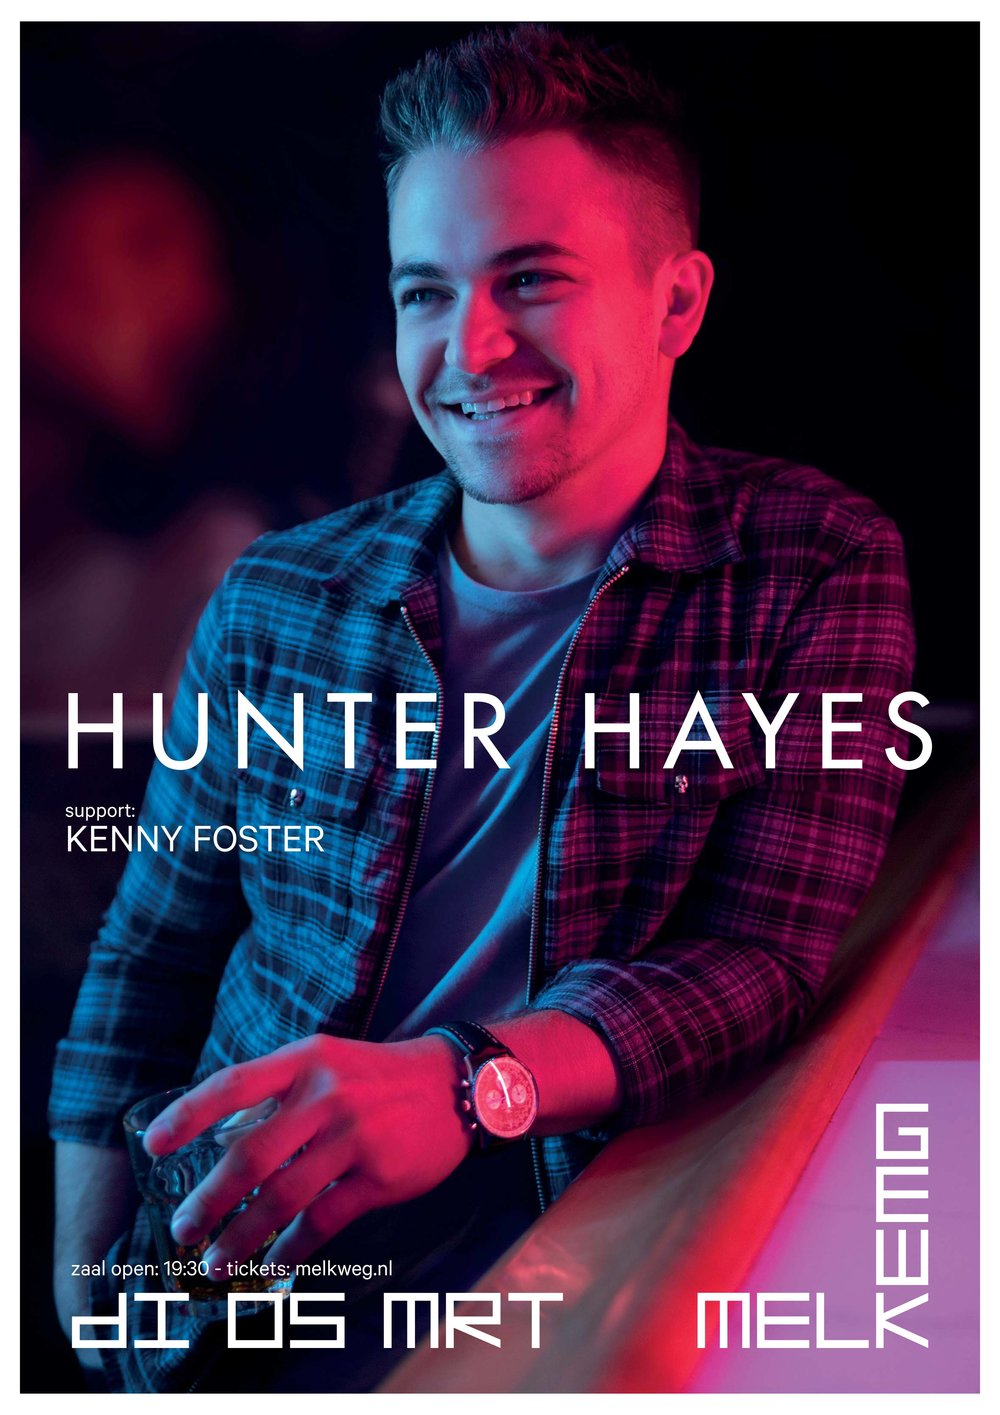 Kenny is excited to announce that he will be providing support for Hunter Hayes at the historic Melkweg in Amsterdam during his European run this March. Tickets and further info can be found  here .